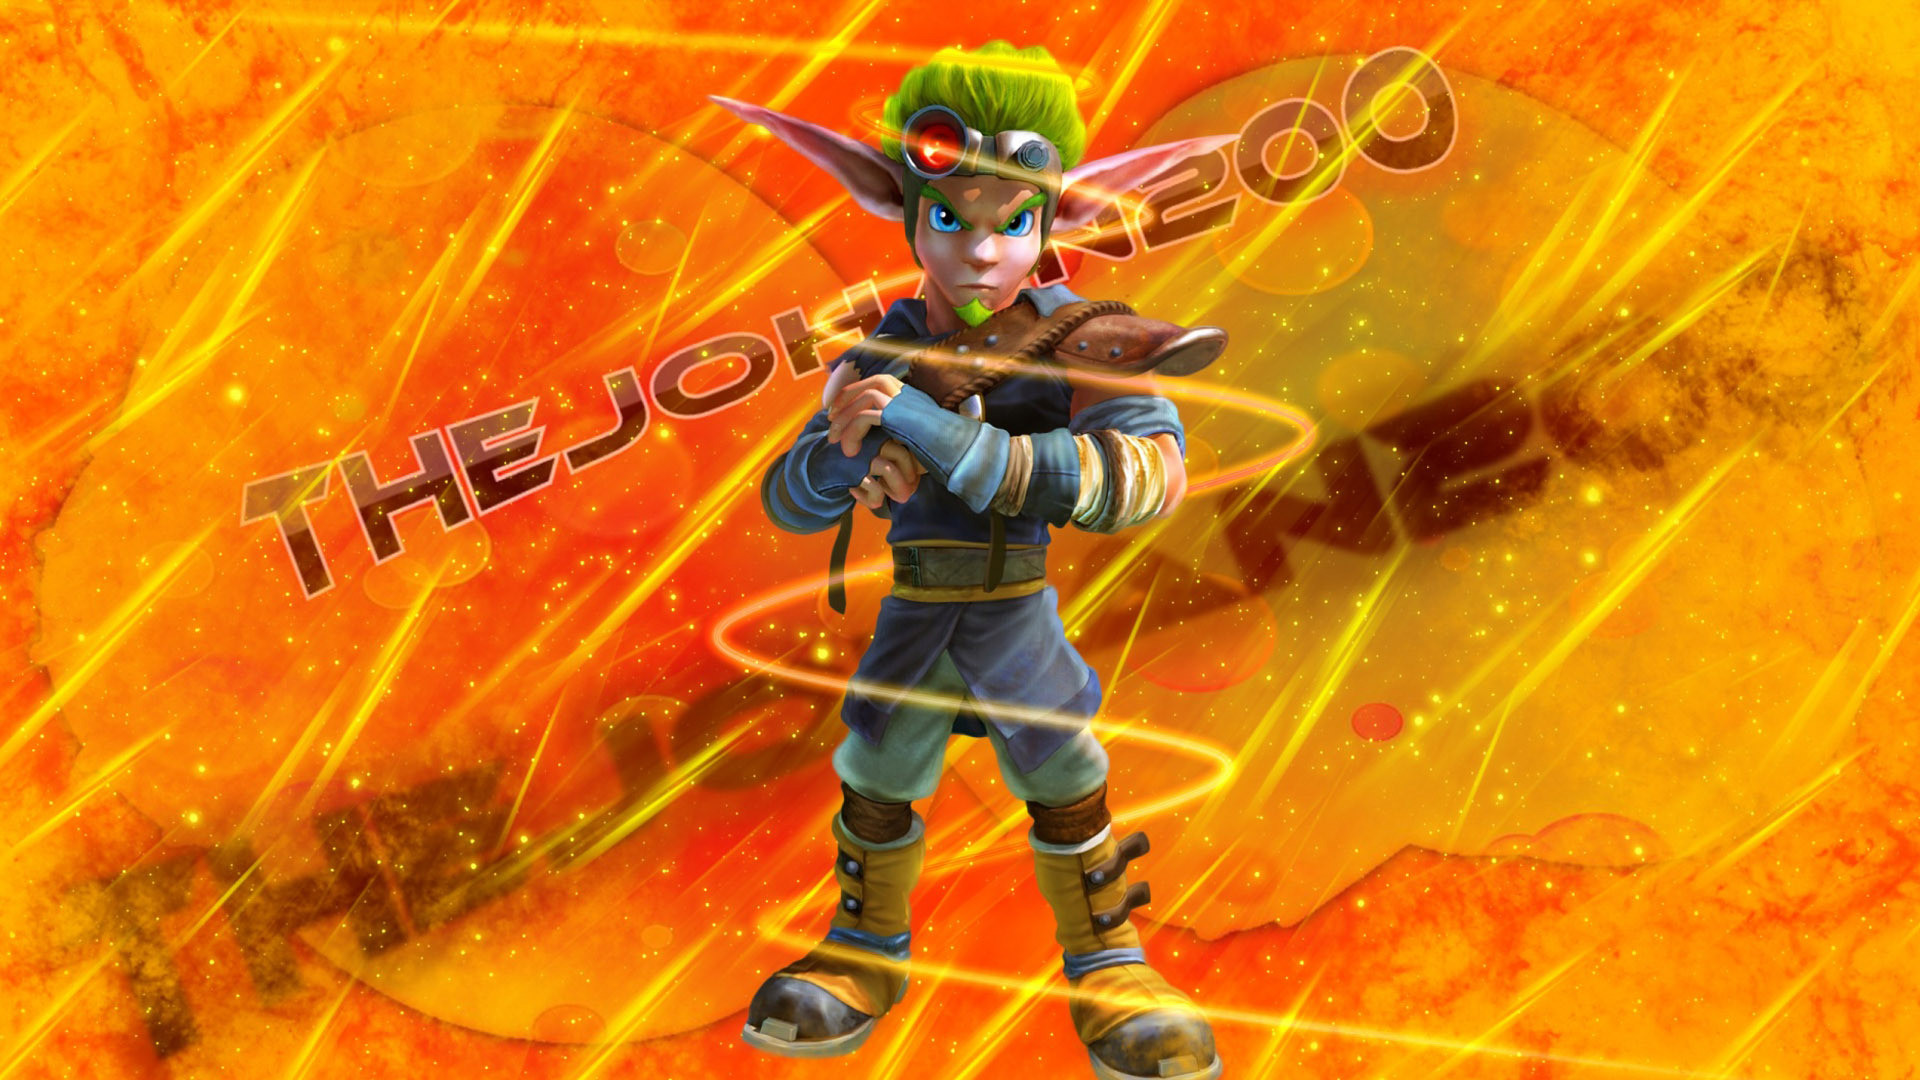 jak and daxter dark jak wallpapers